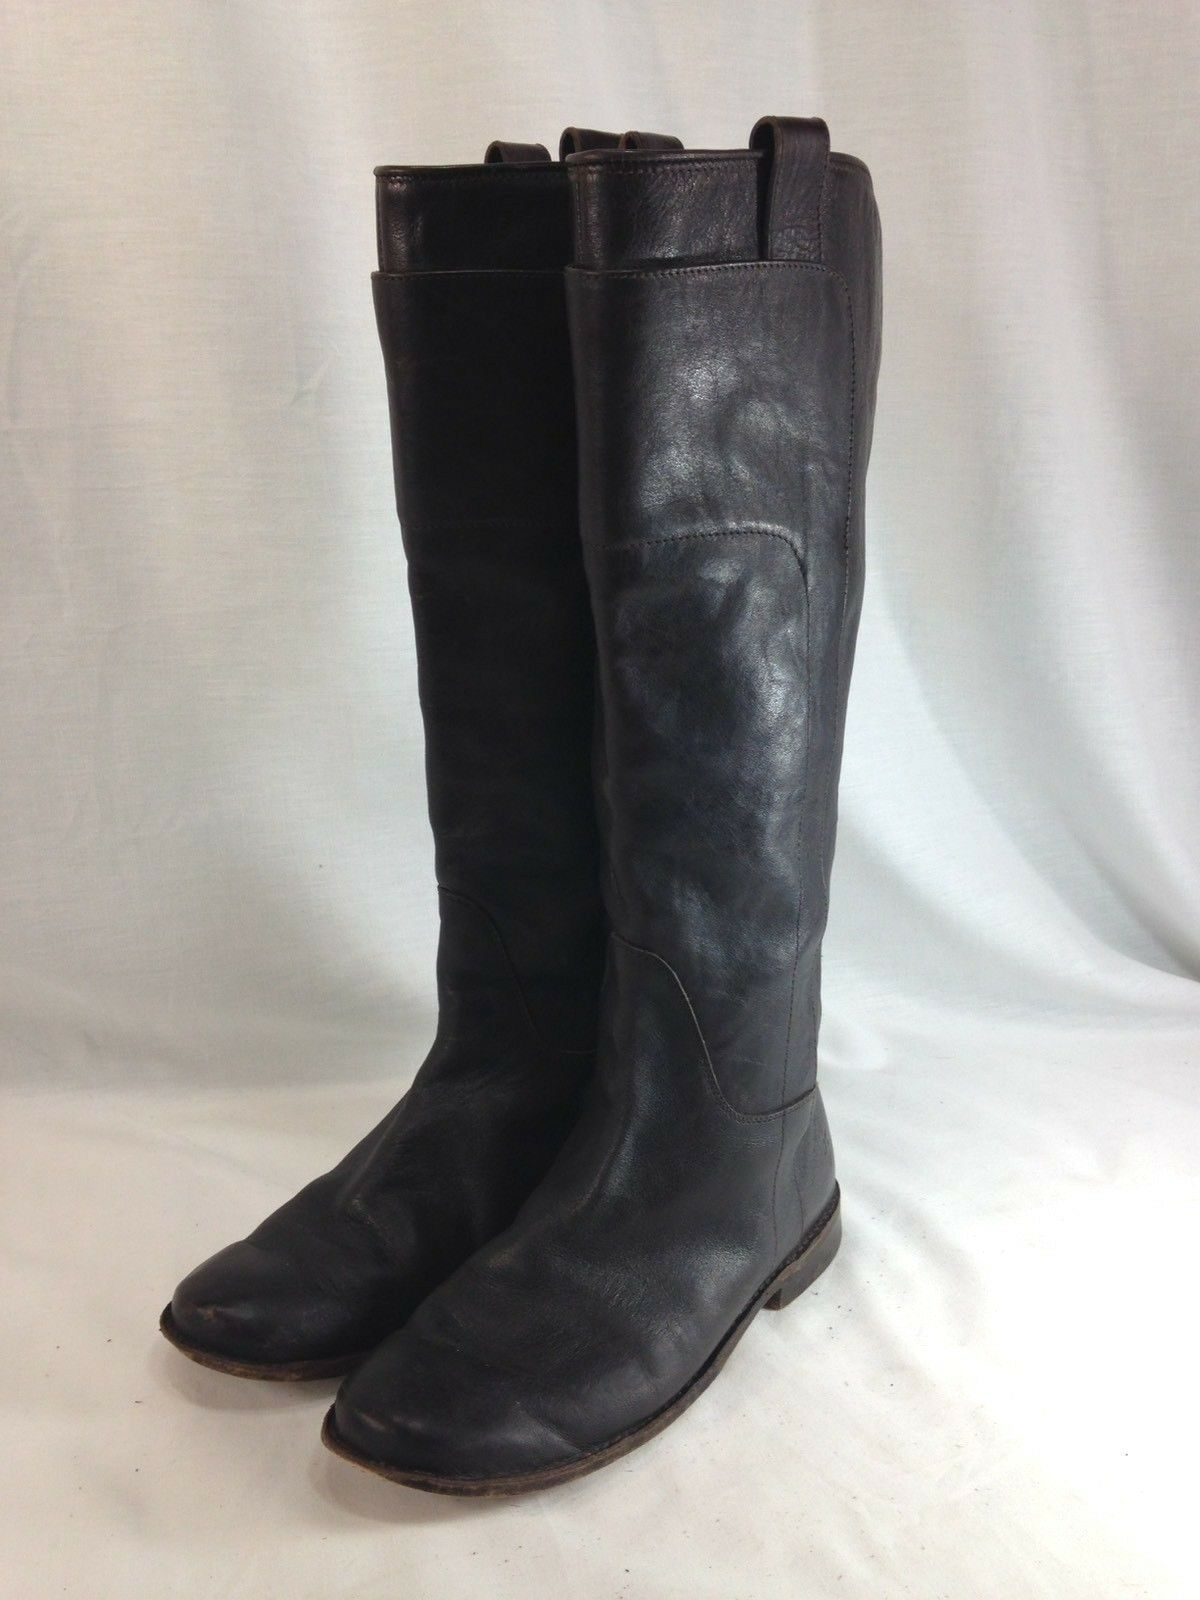 Frye Paige Boots Womens 7 M Dark Brown Leather Tall Riding Boots